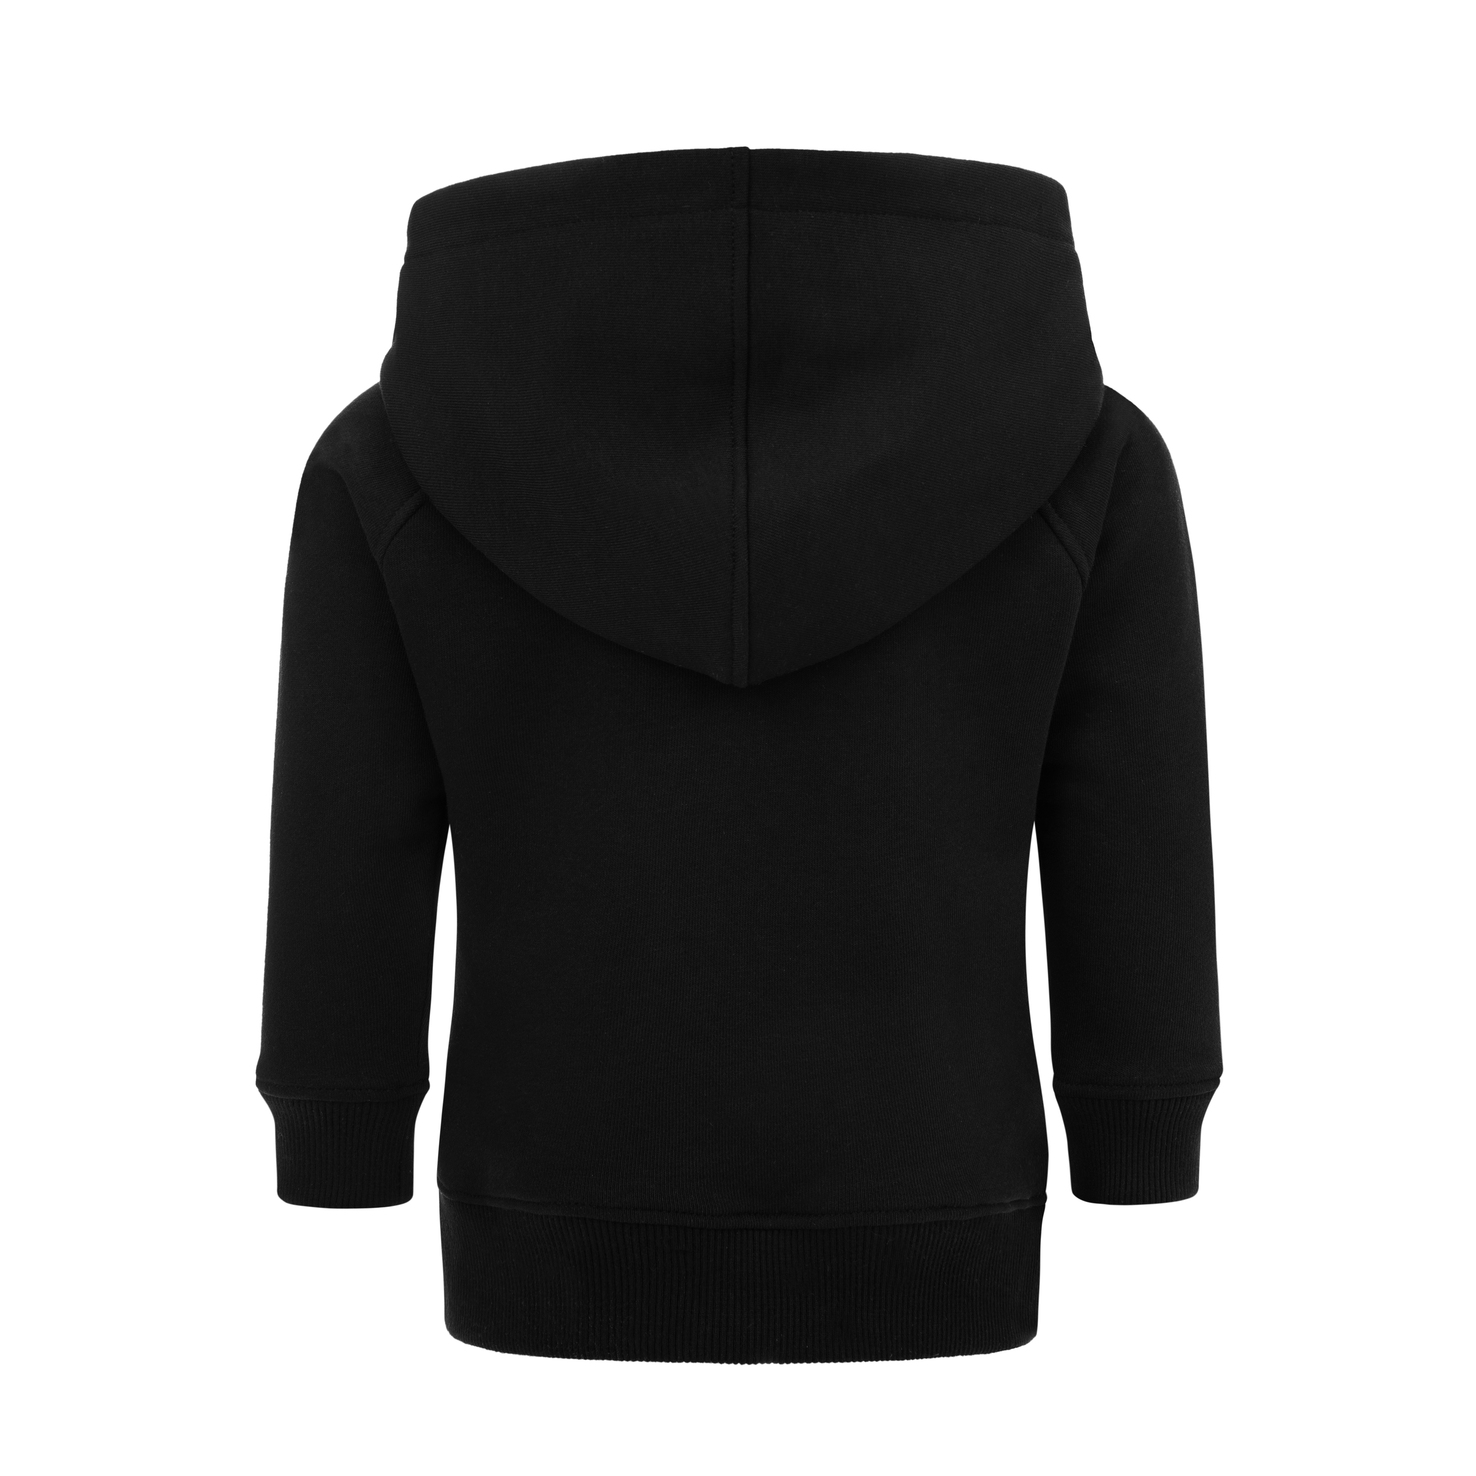 KIDS BLACK SWEATSHIRT - Sidro | JestemSlow.pl